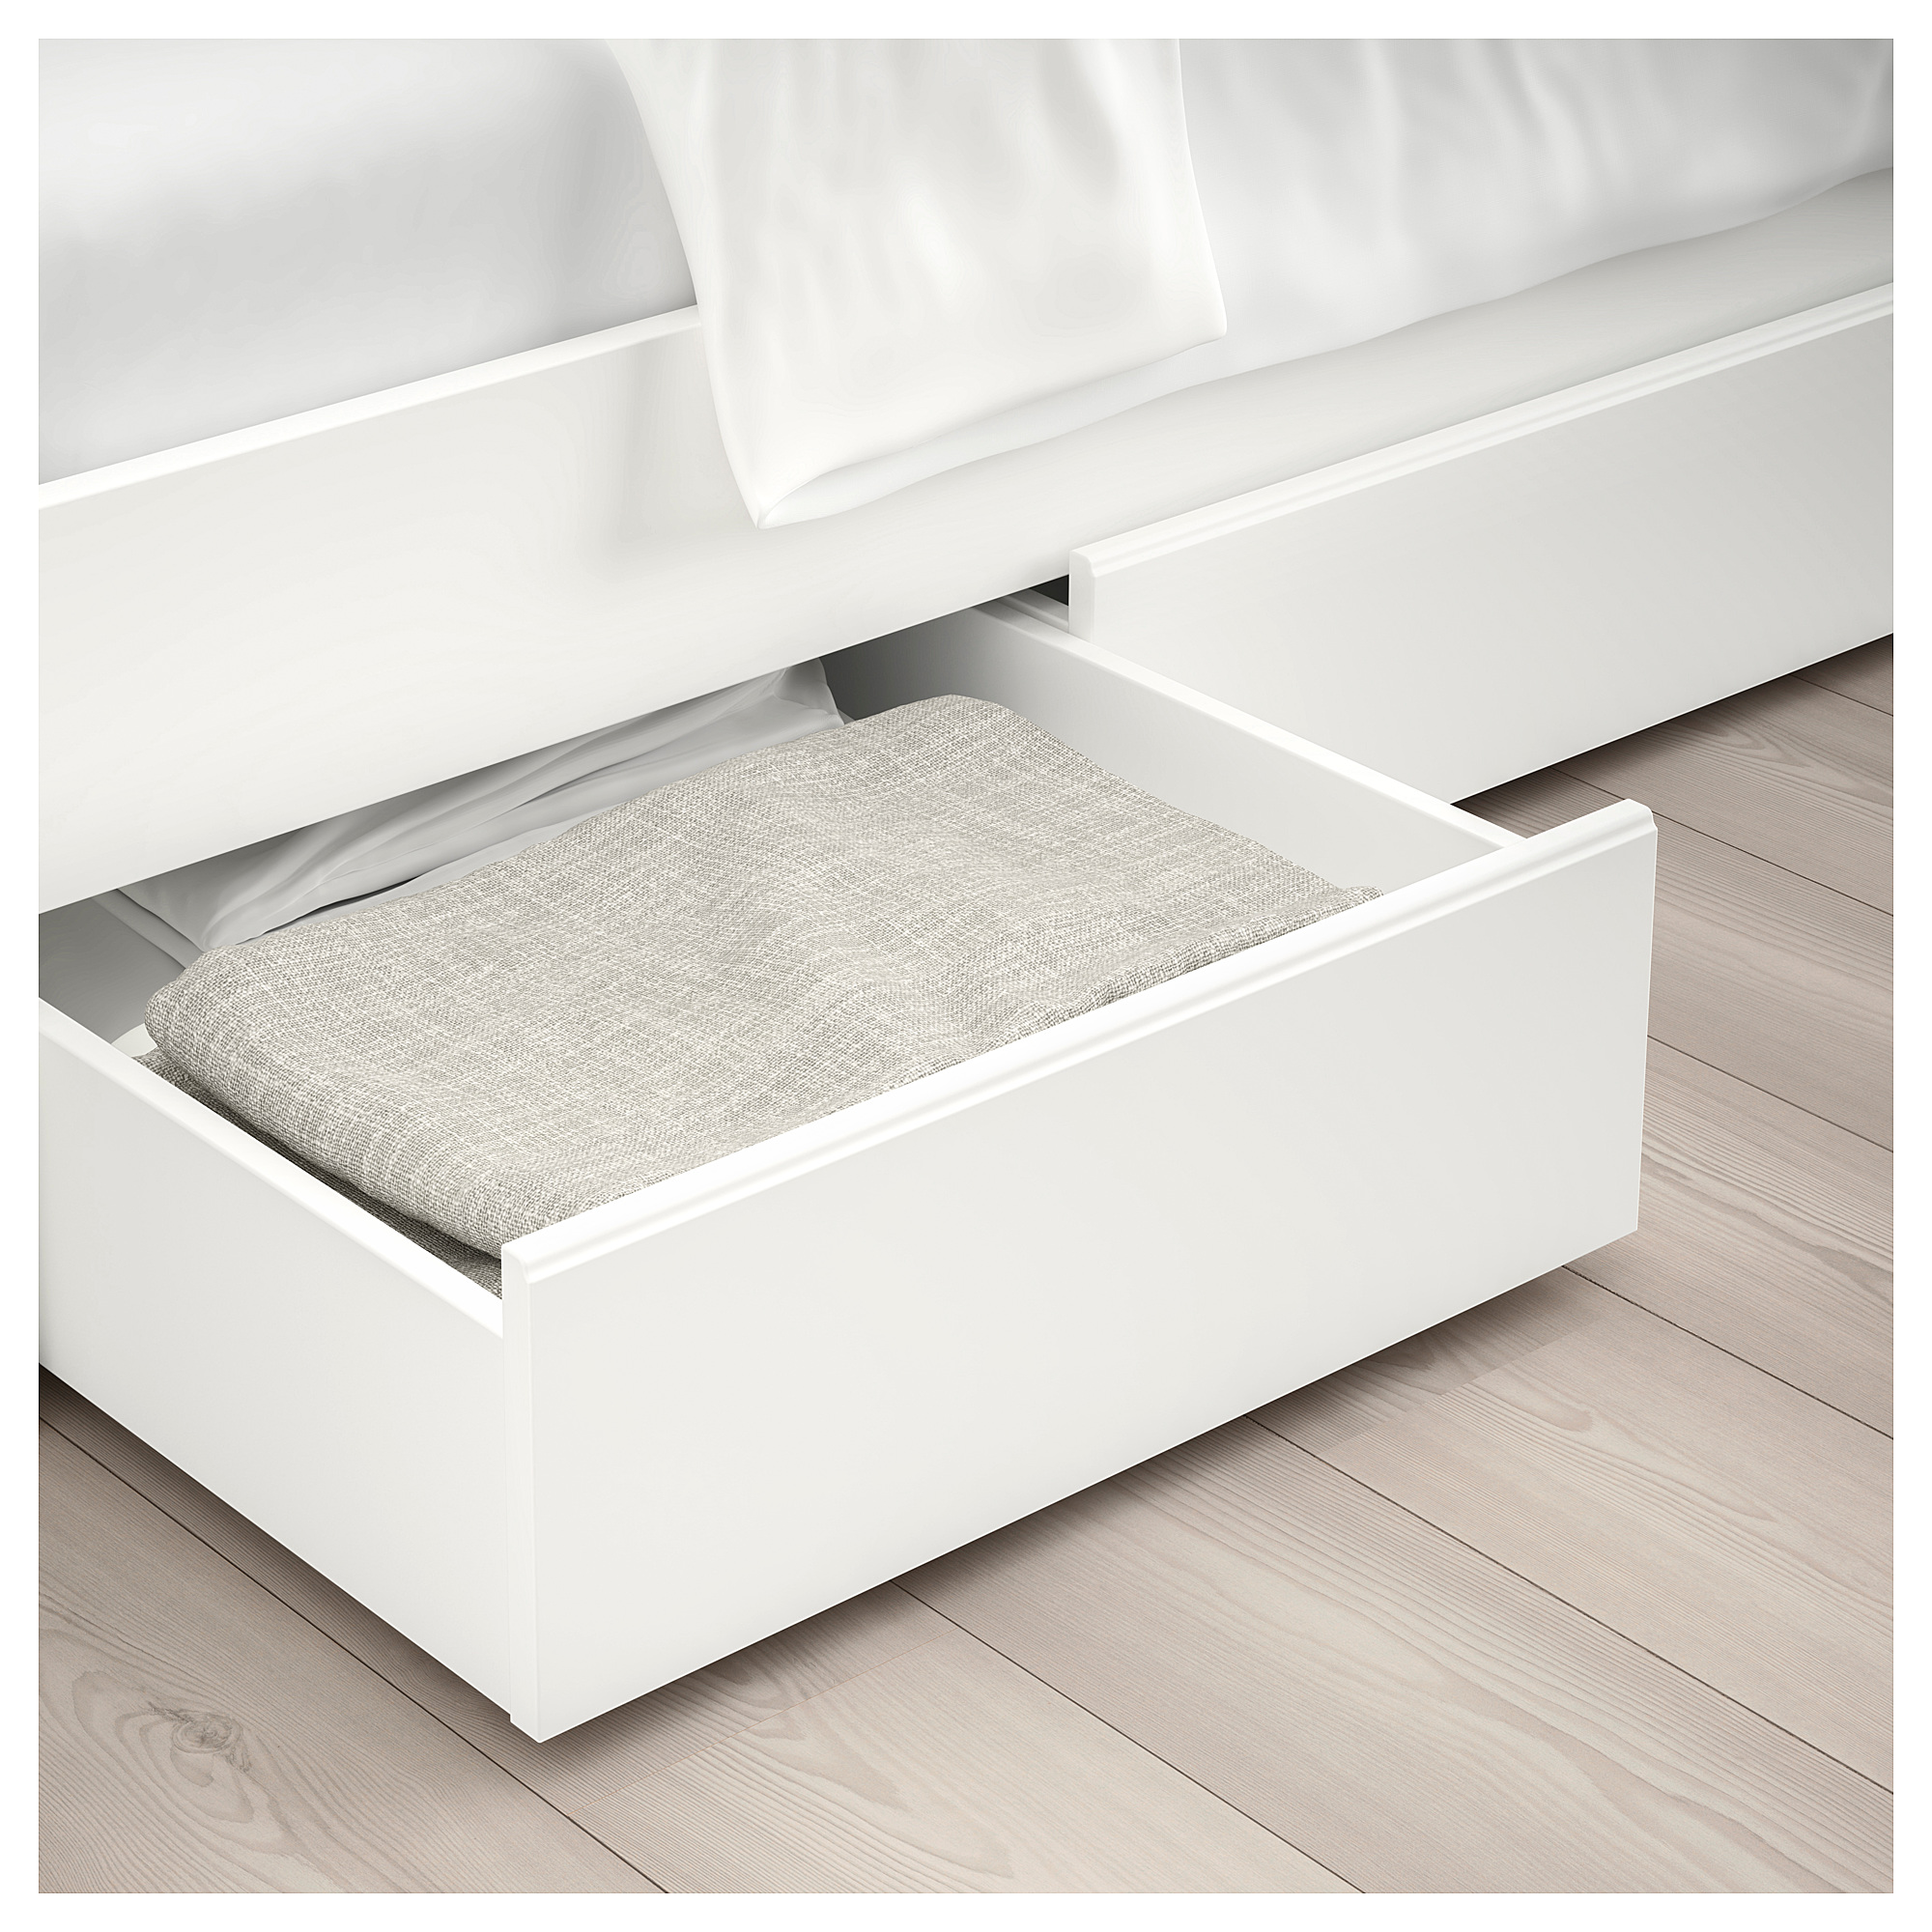 pretty nice 6402d f1bbf SONGESAND - bed frame with 2 storage boxes, single | IKEA ...